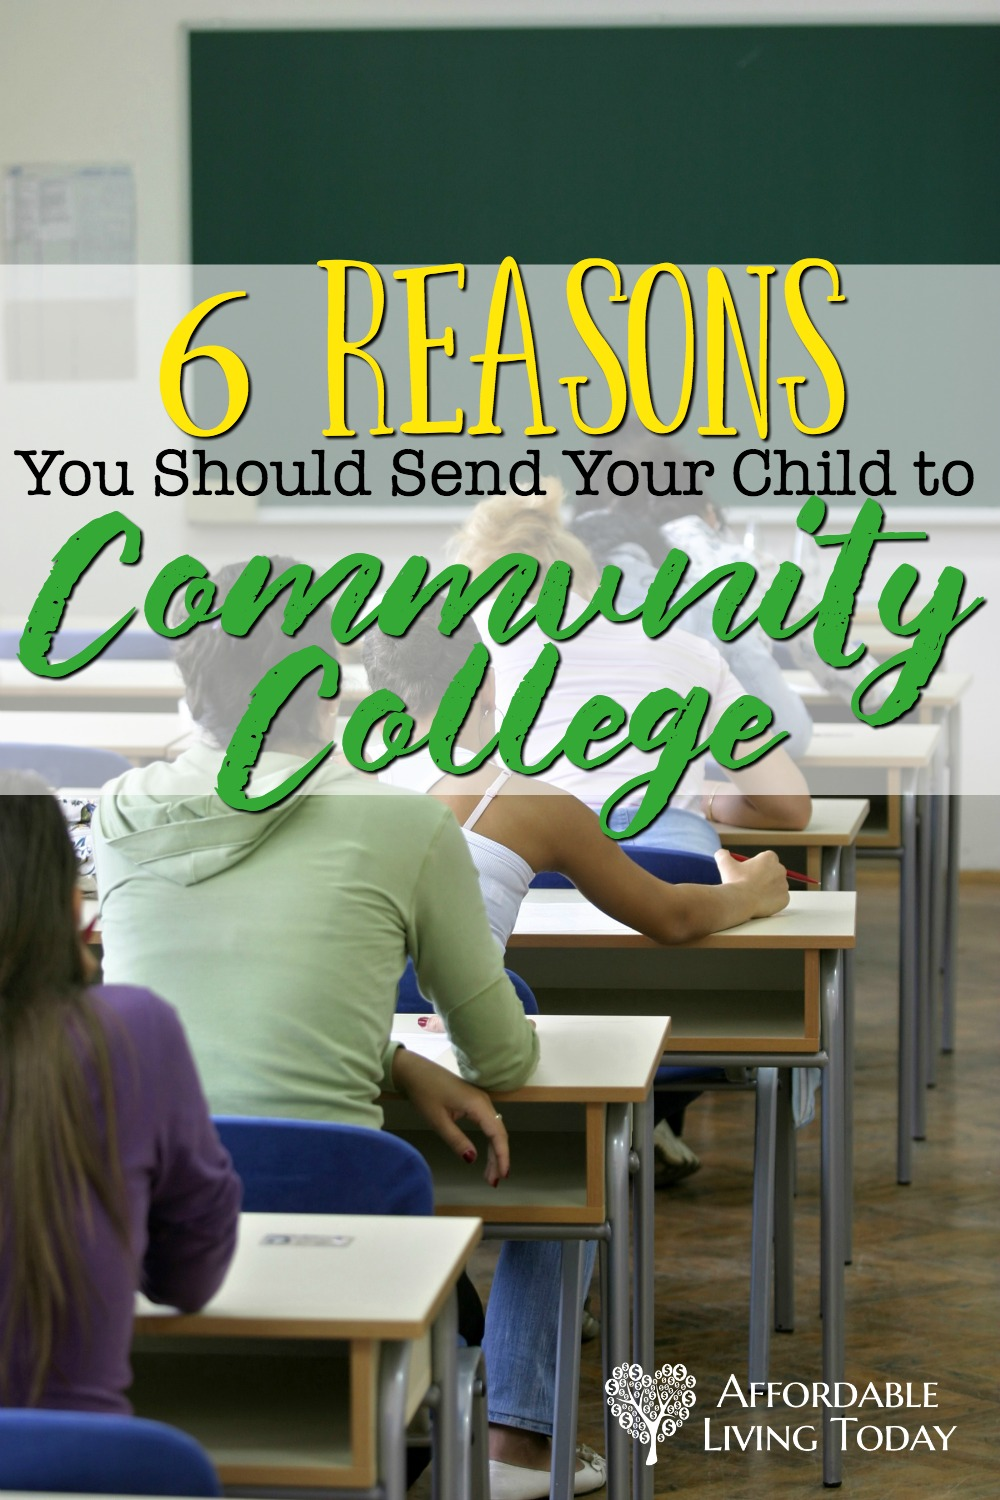 If you are worried about paying for college, consider sending your kid to community college. There are some awesome benefits to doing this.